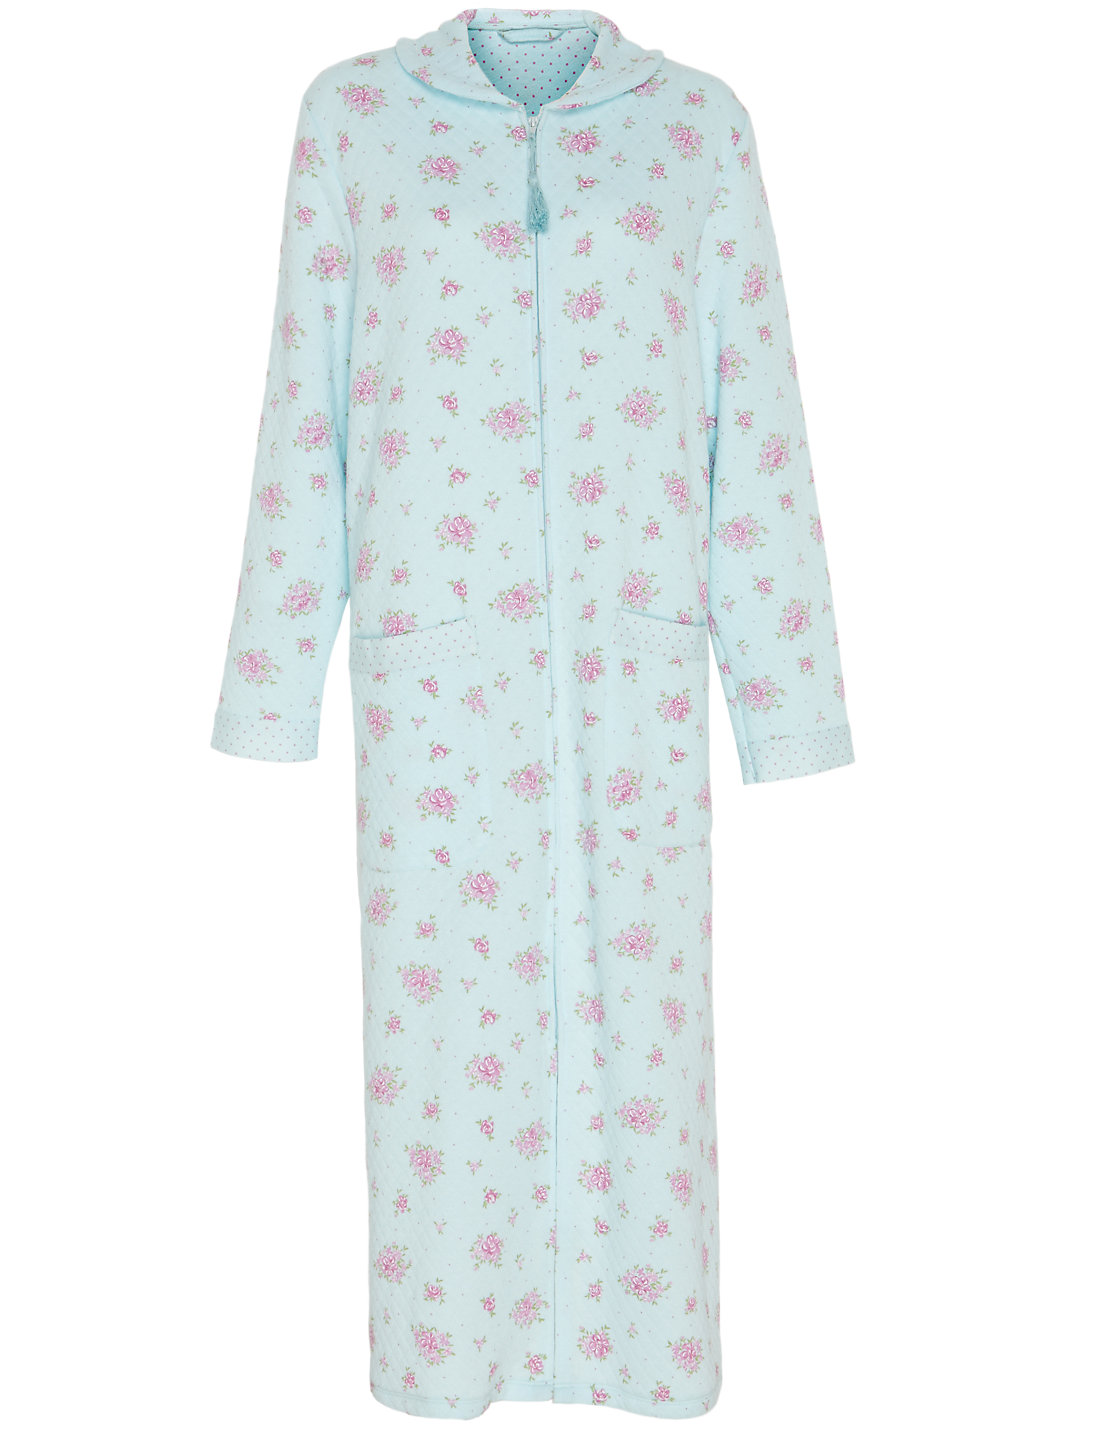 Floral & Spotted Quilted Dressing Gown | M&S : quilted dressing gown - Adamdwight.com